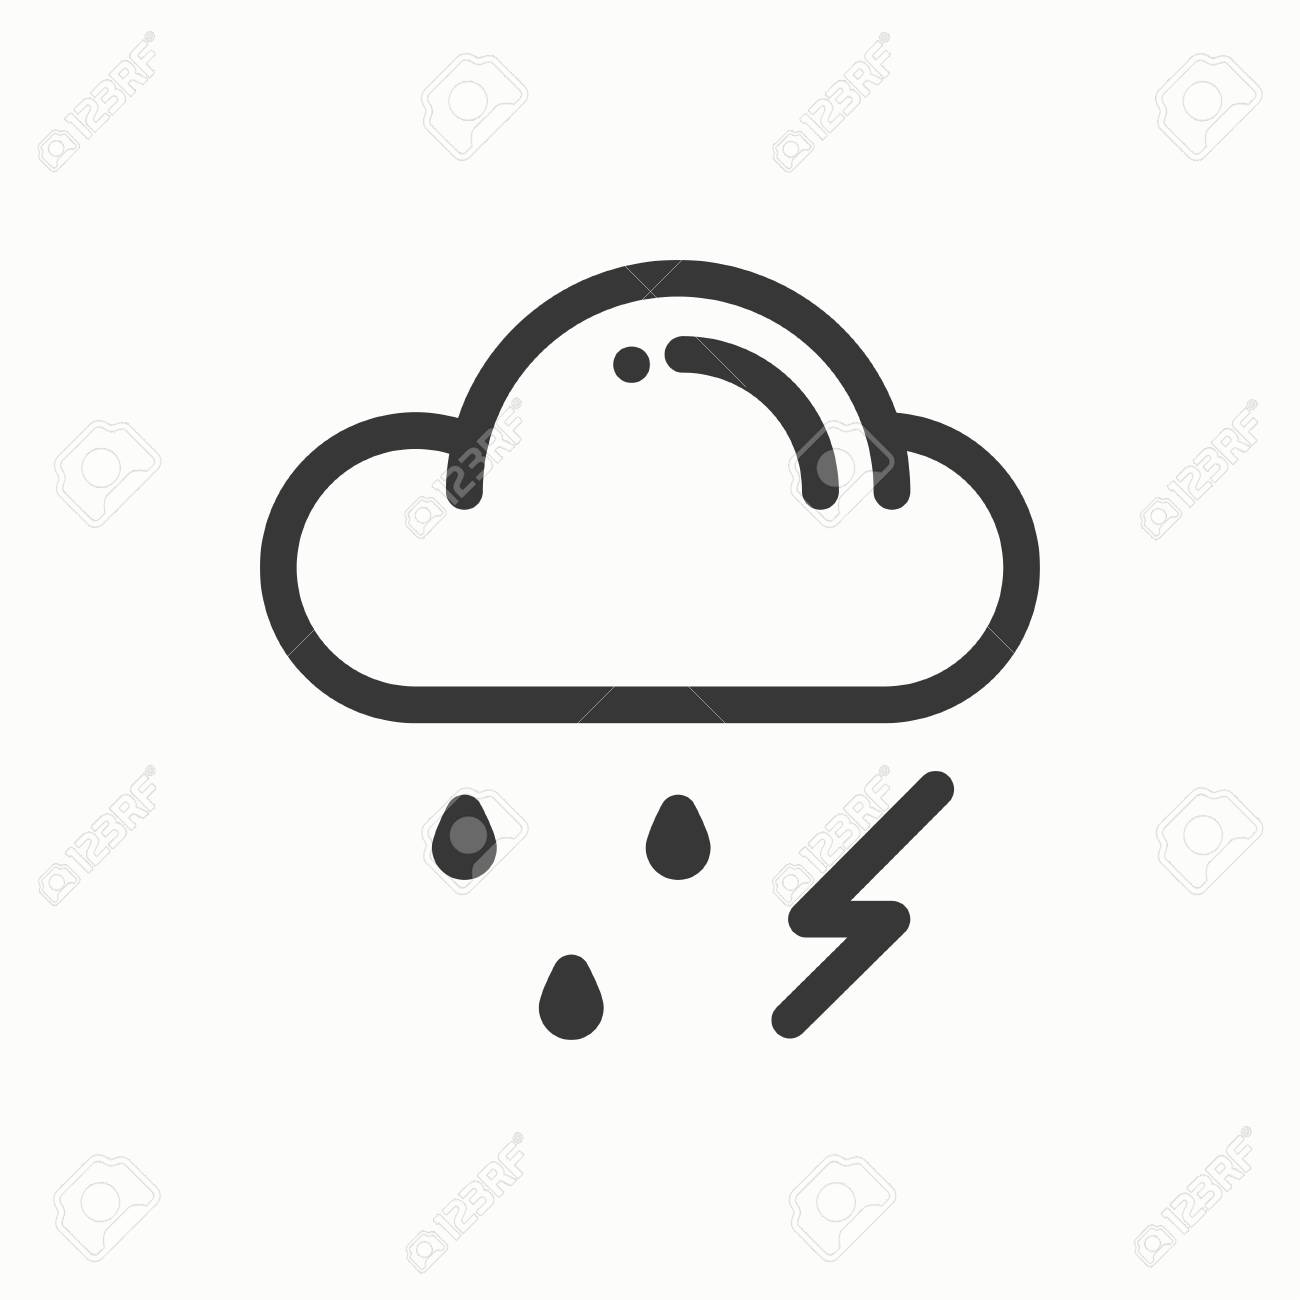 Cloud, sky, rain, storm line simple icon  Weather symbols  Meteorology